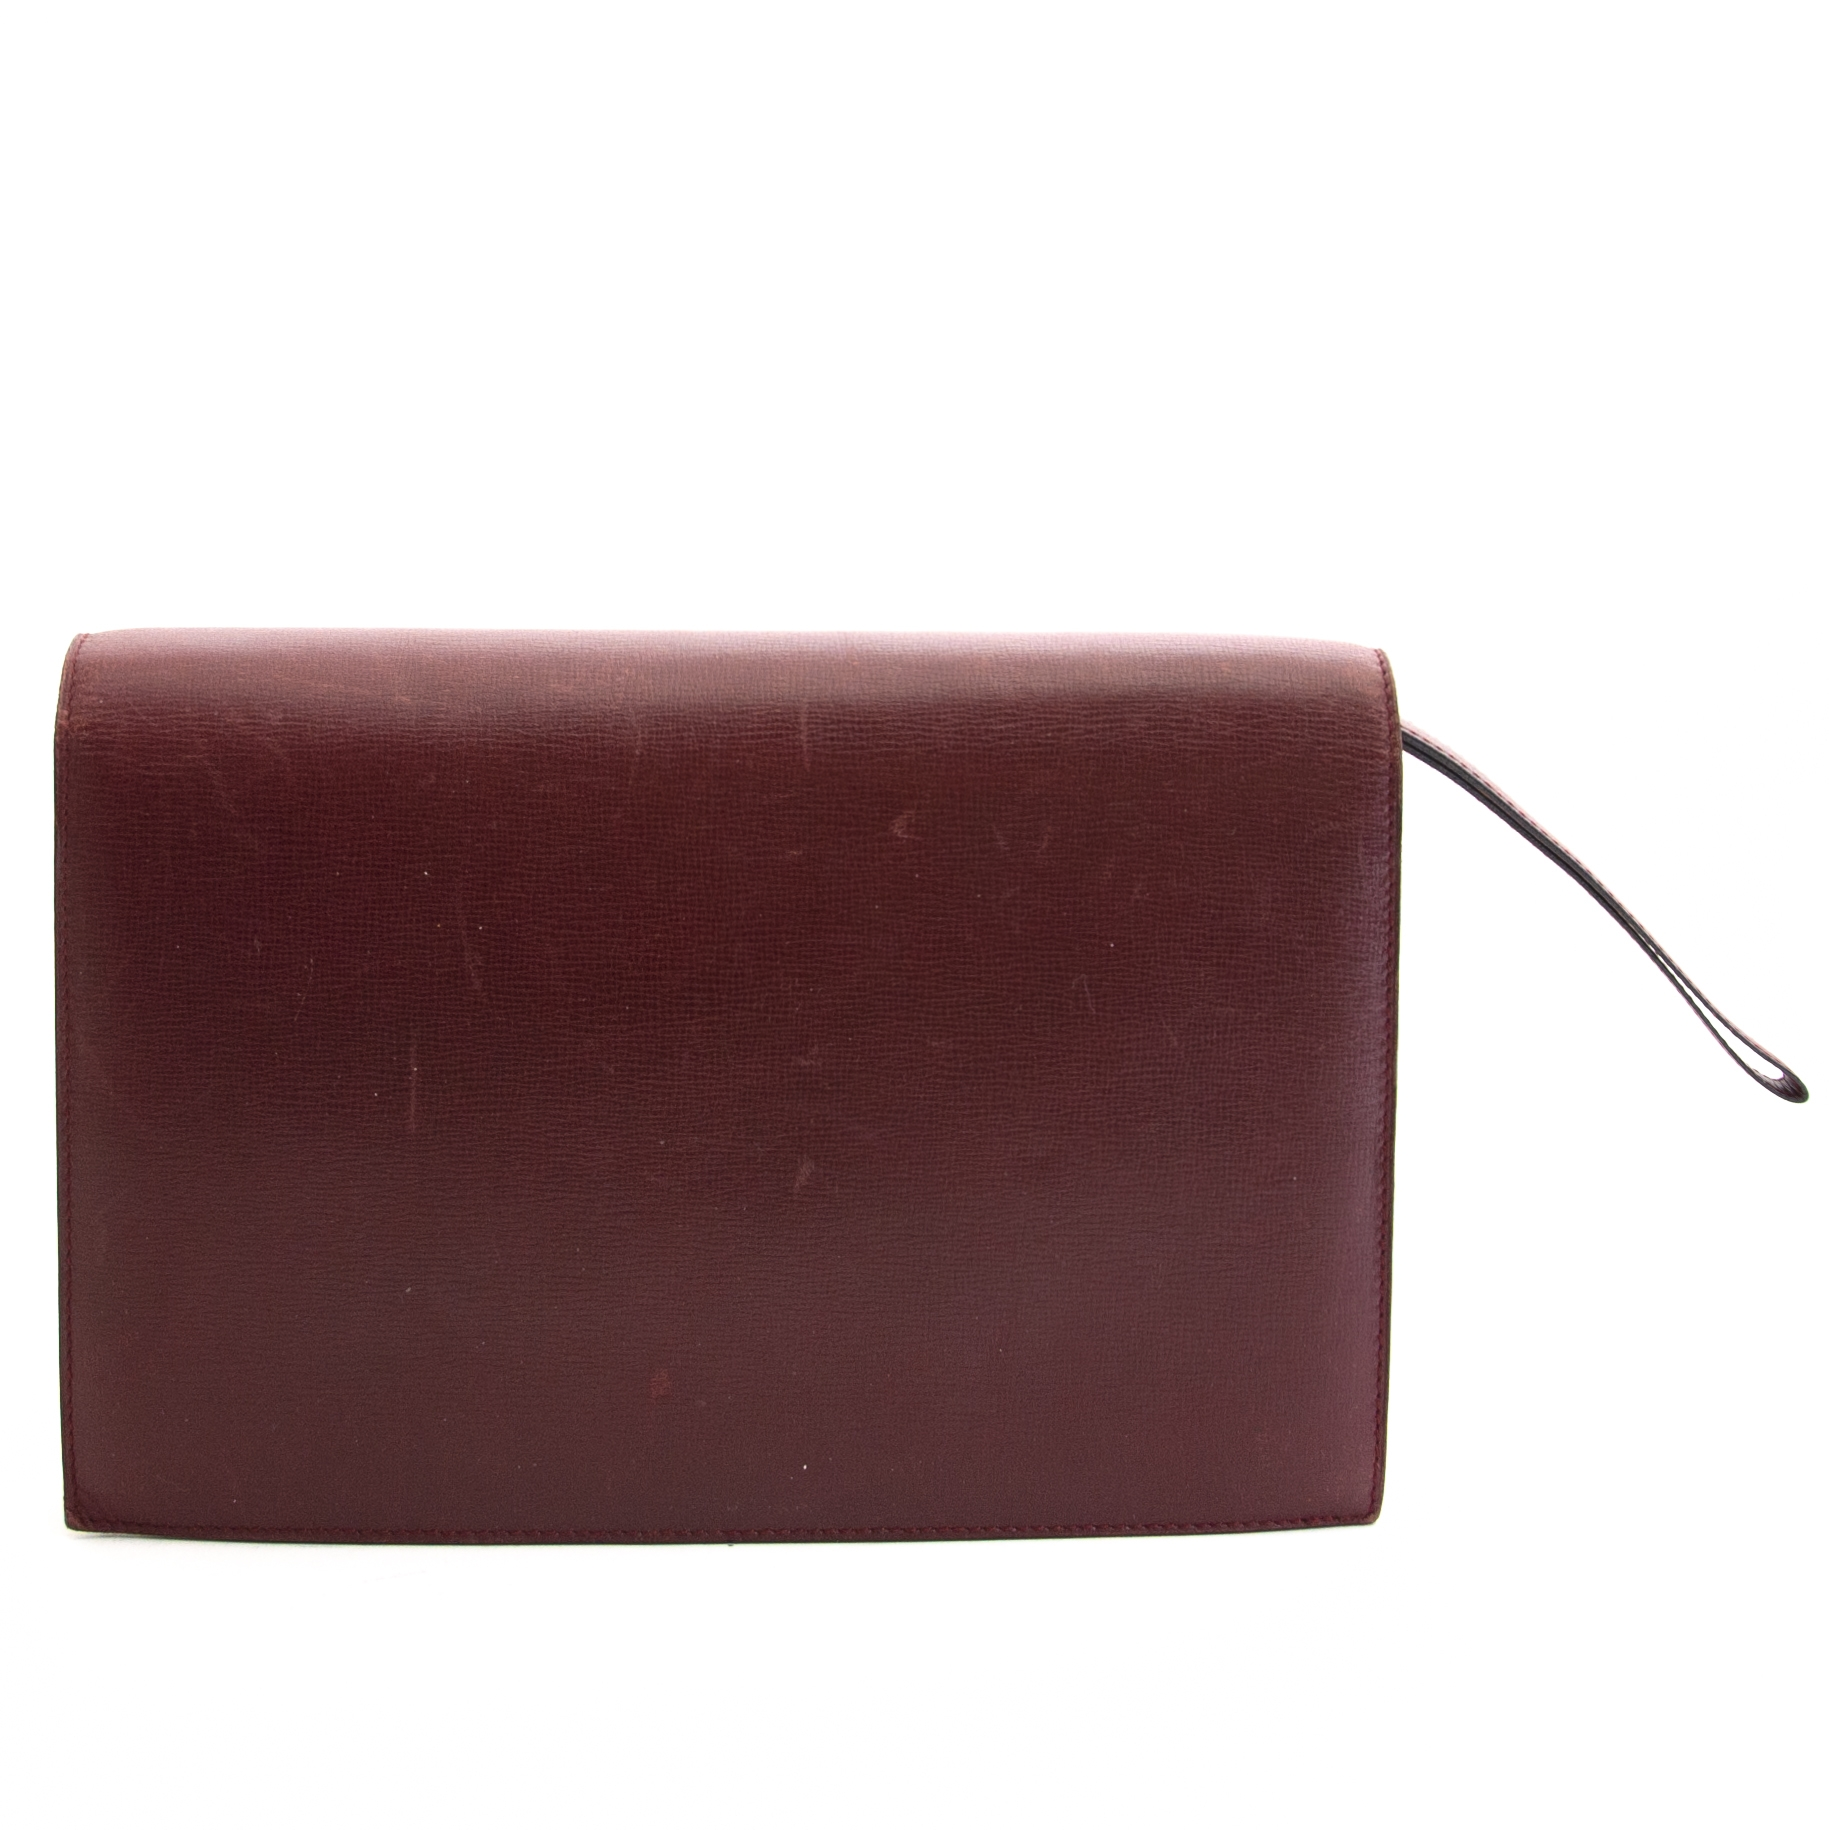 Authentieke tweedehands vintage Cartier Burgundy Clutch Bag koop online webshop LabelLOV